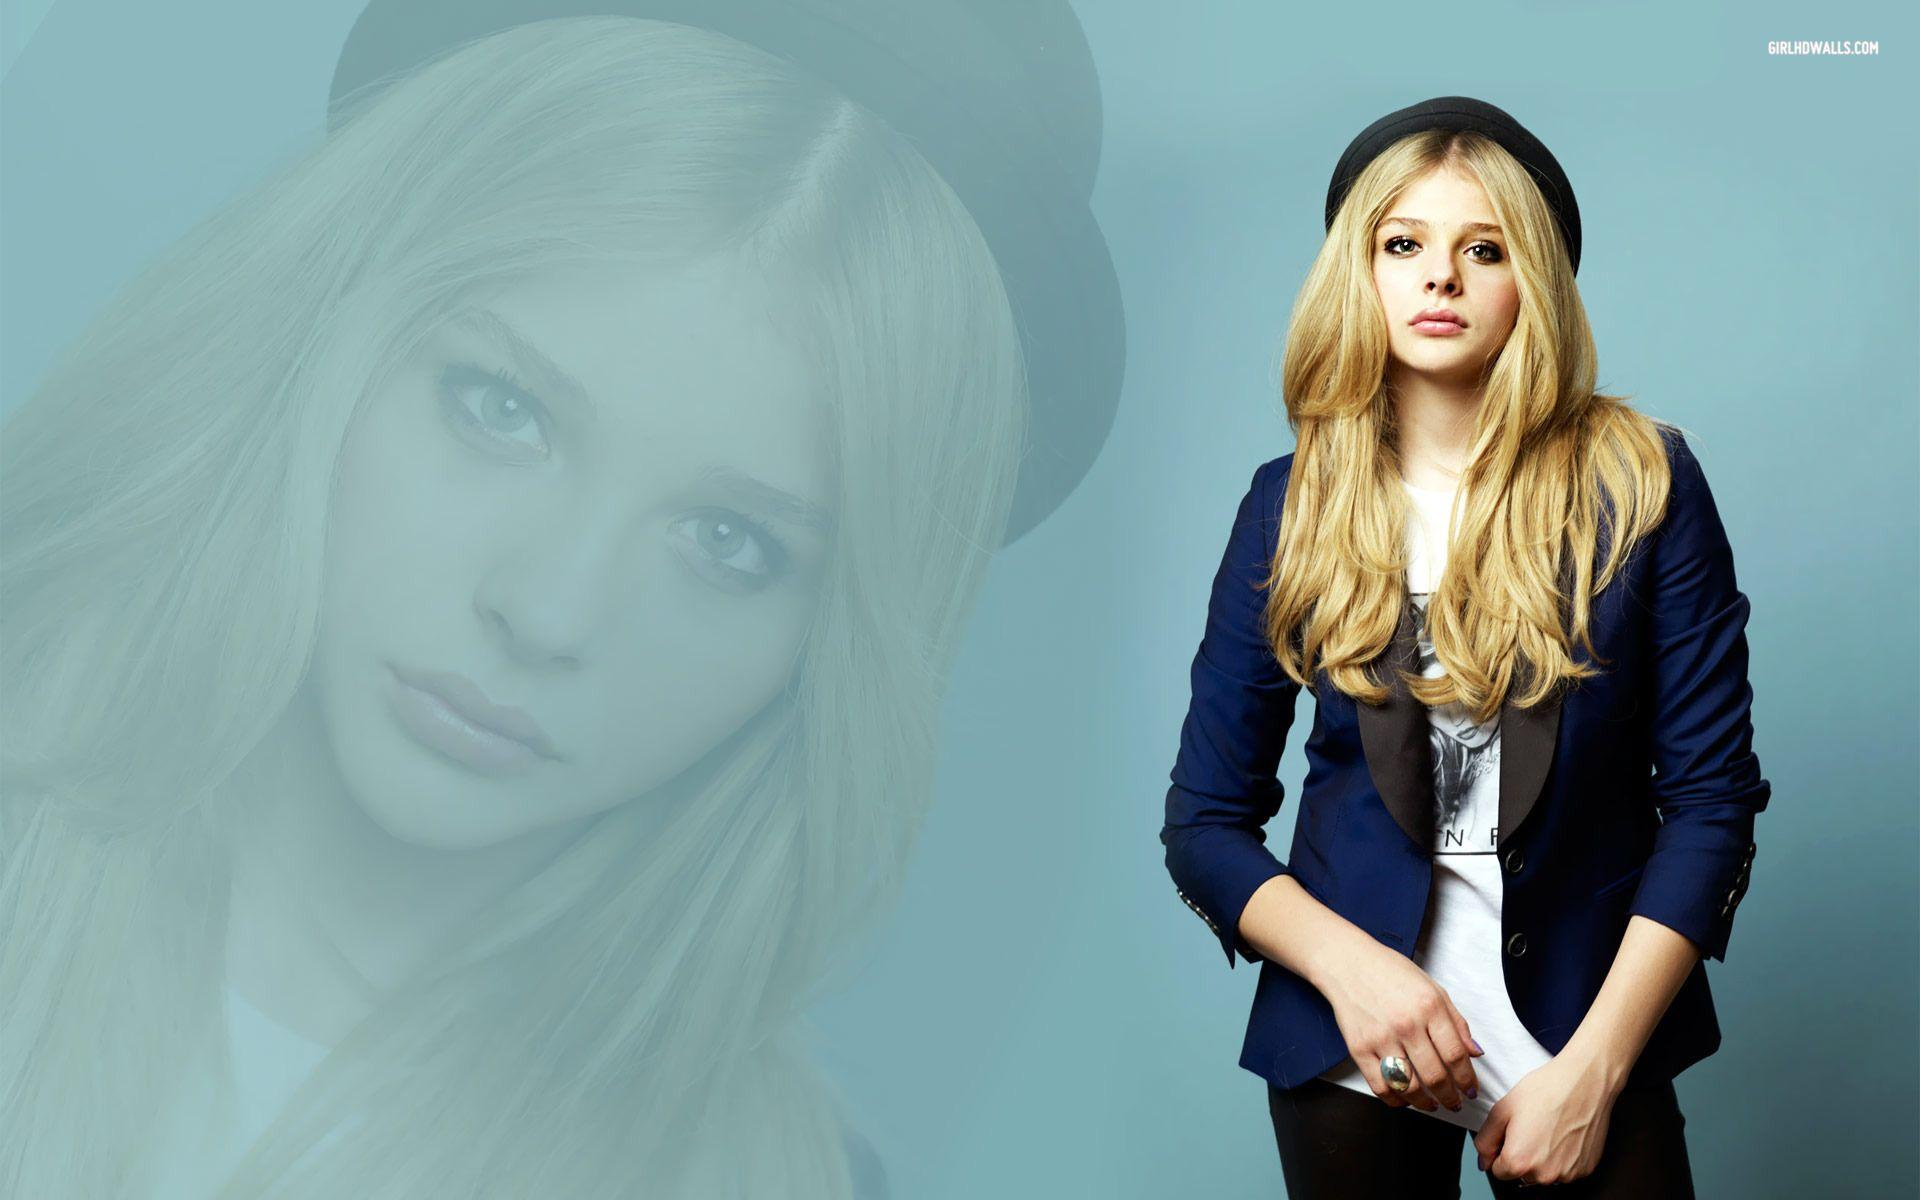 Chloe Grace Moretz Wallpapers Page